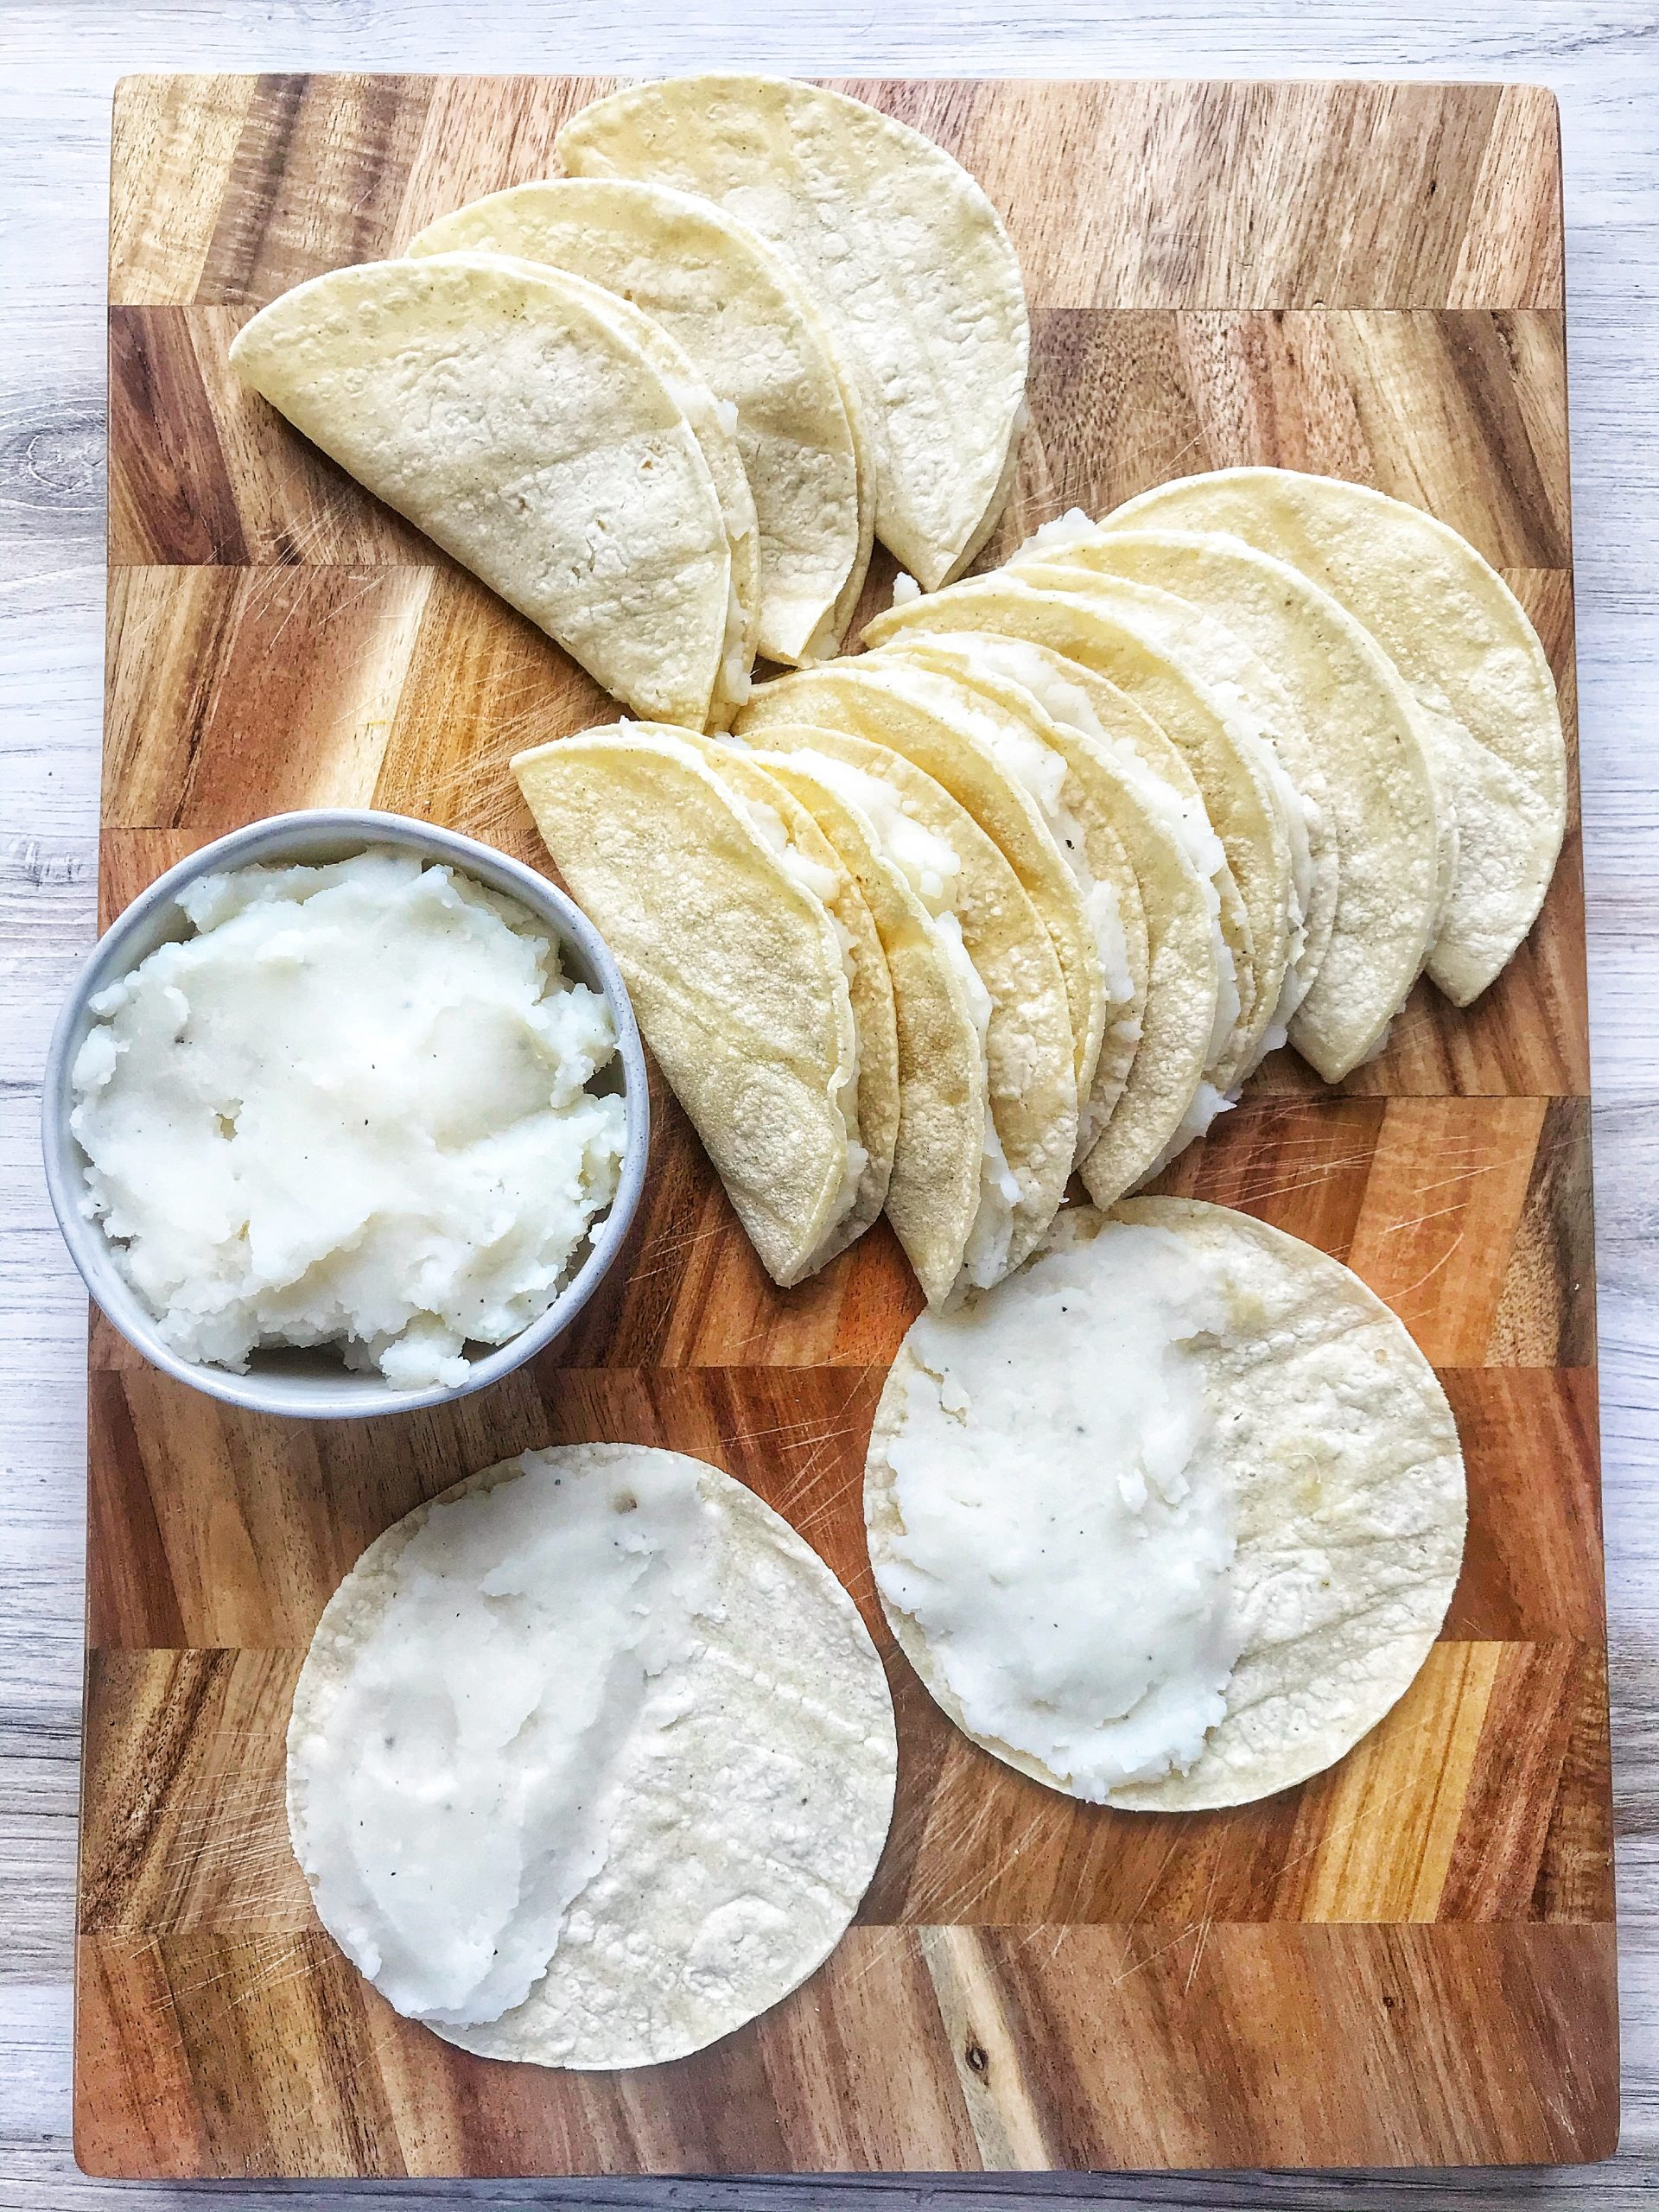 White corn tortillas filled with mashed potato. Open potato tacos and folded potato tacos.